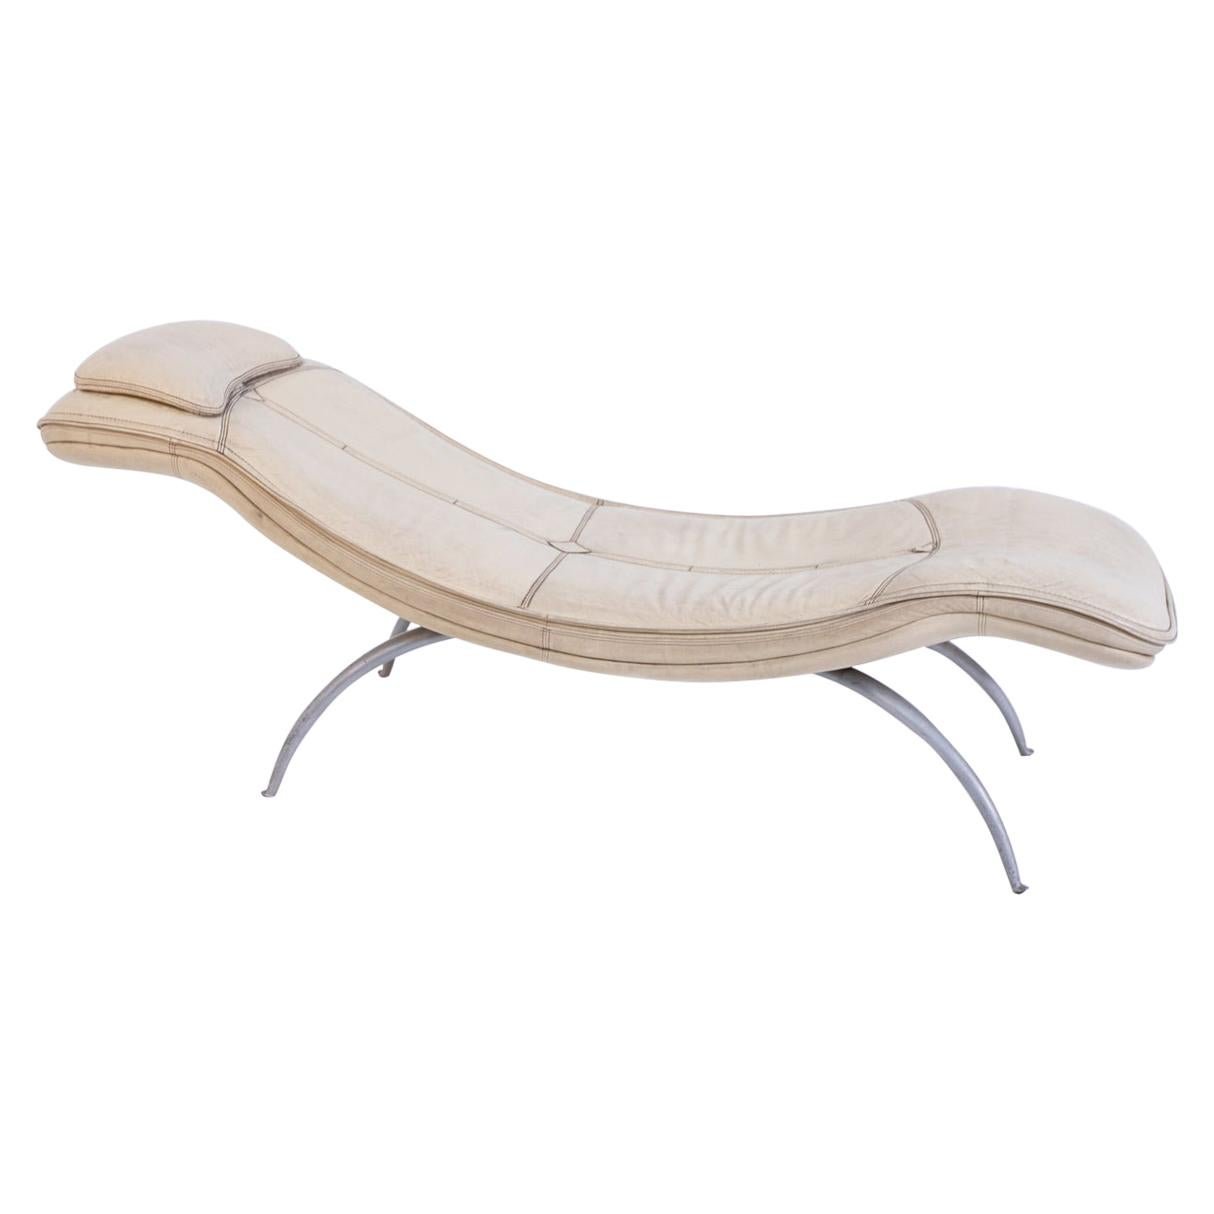 Chaise Longue in Leather Prod. by Moroso, 1970s